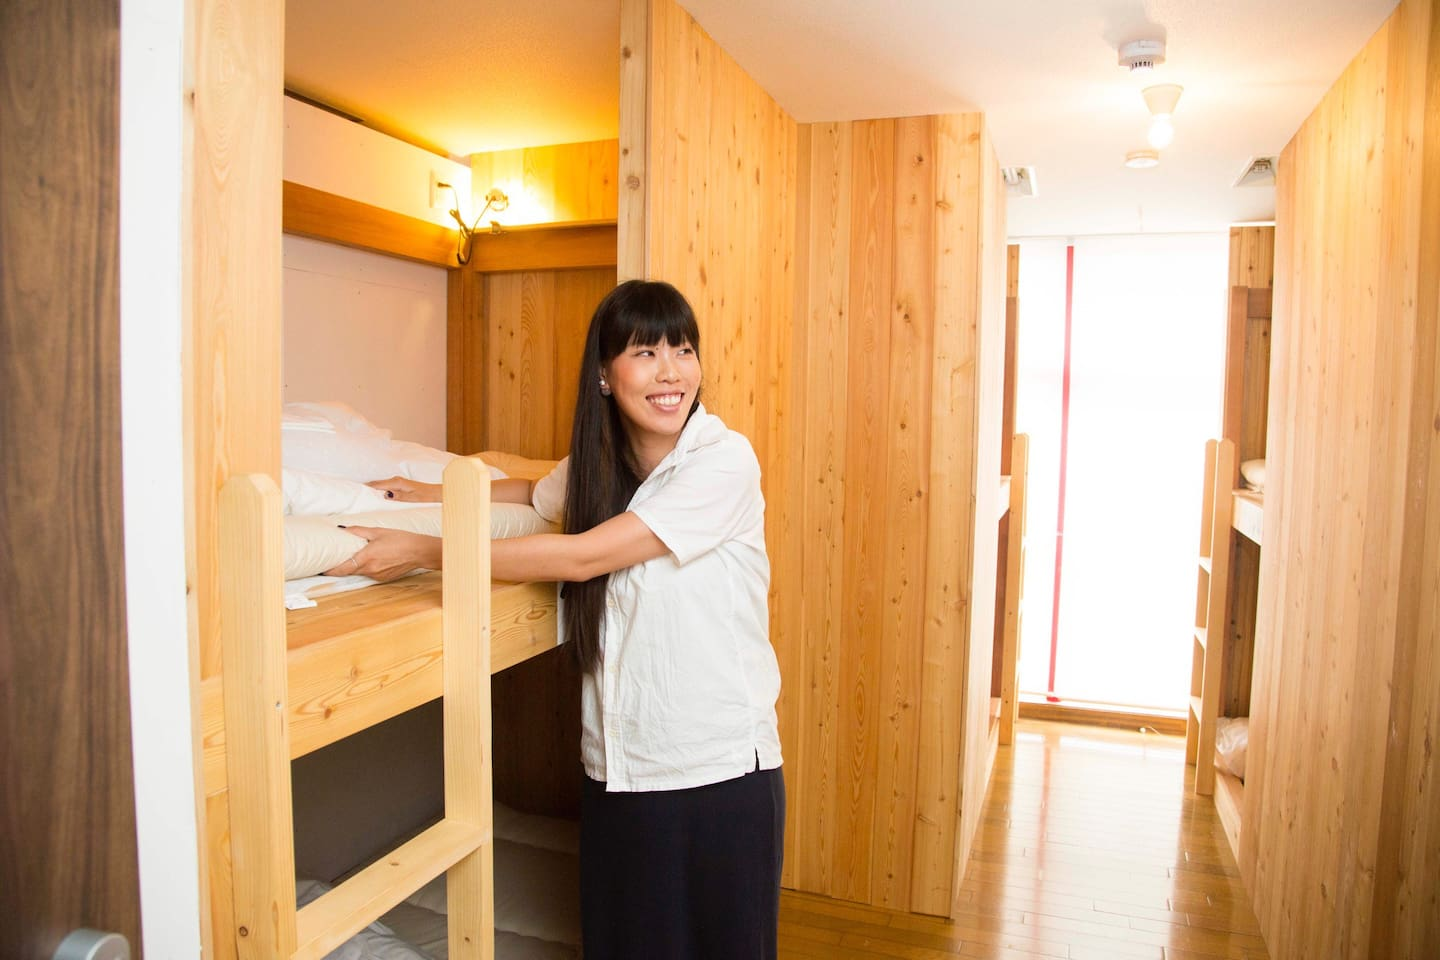 I'm the owner, Hazuki. Looking forward to seeing you:) [This is female dorm room!]